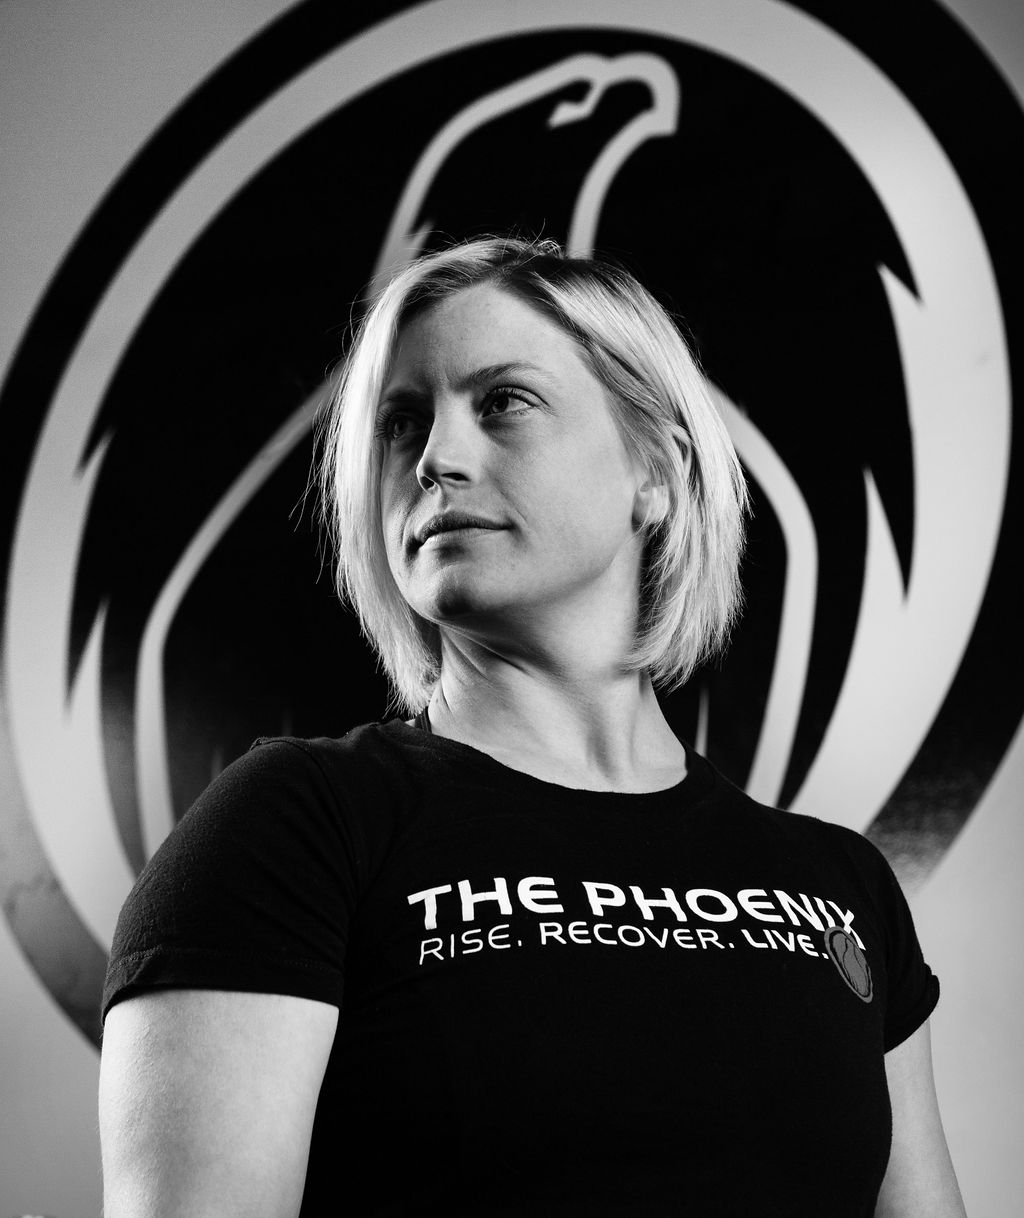 AMANDA HALL  | VOLUNTEER COACH  I'm Amanda and I am a volunteer coach with The Phoenix. I love to help people discover their own passion for fitness as I did. Fitness has been an integral part of my life and recovery for as long as I can remember. Fitness has taken me to places like the finish line of a marathon and the top of a mountain, but more importantly fitness brought me to my tribe at the Phoenix and Per Ignem CrossFit. I feel extremely grateful for the opportunity given to me to be of service to others.  I have been an avid CrossFitter, downhill mountain biker, climber, marathon runner and Olympic Weightlifter during my fitness journey. I love the challenge and reward of pushing the body to its physical limitations and seeing what we are truly capable of, and I'd love to help you do it to!    CREDENTIALS  CrossFit Level 2 Trainer CrossFit Level 1 Trainer CrossFit Kids Coach USAW Sports Performance Coach